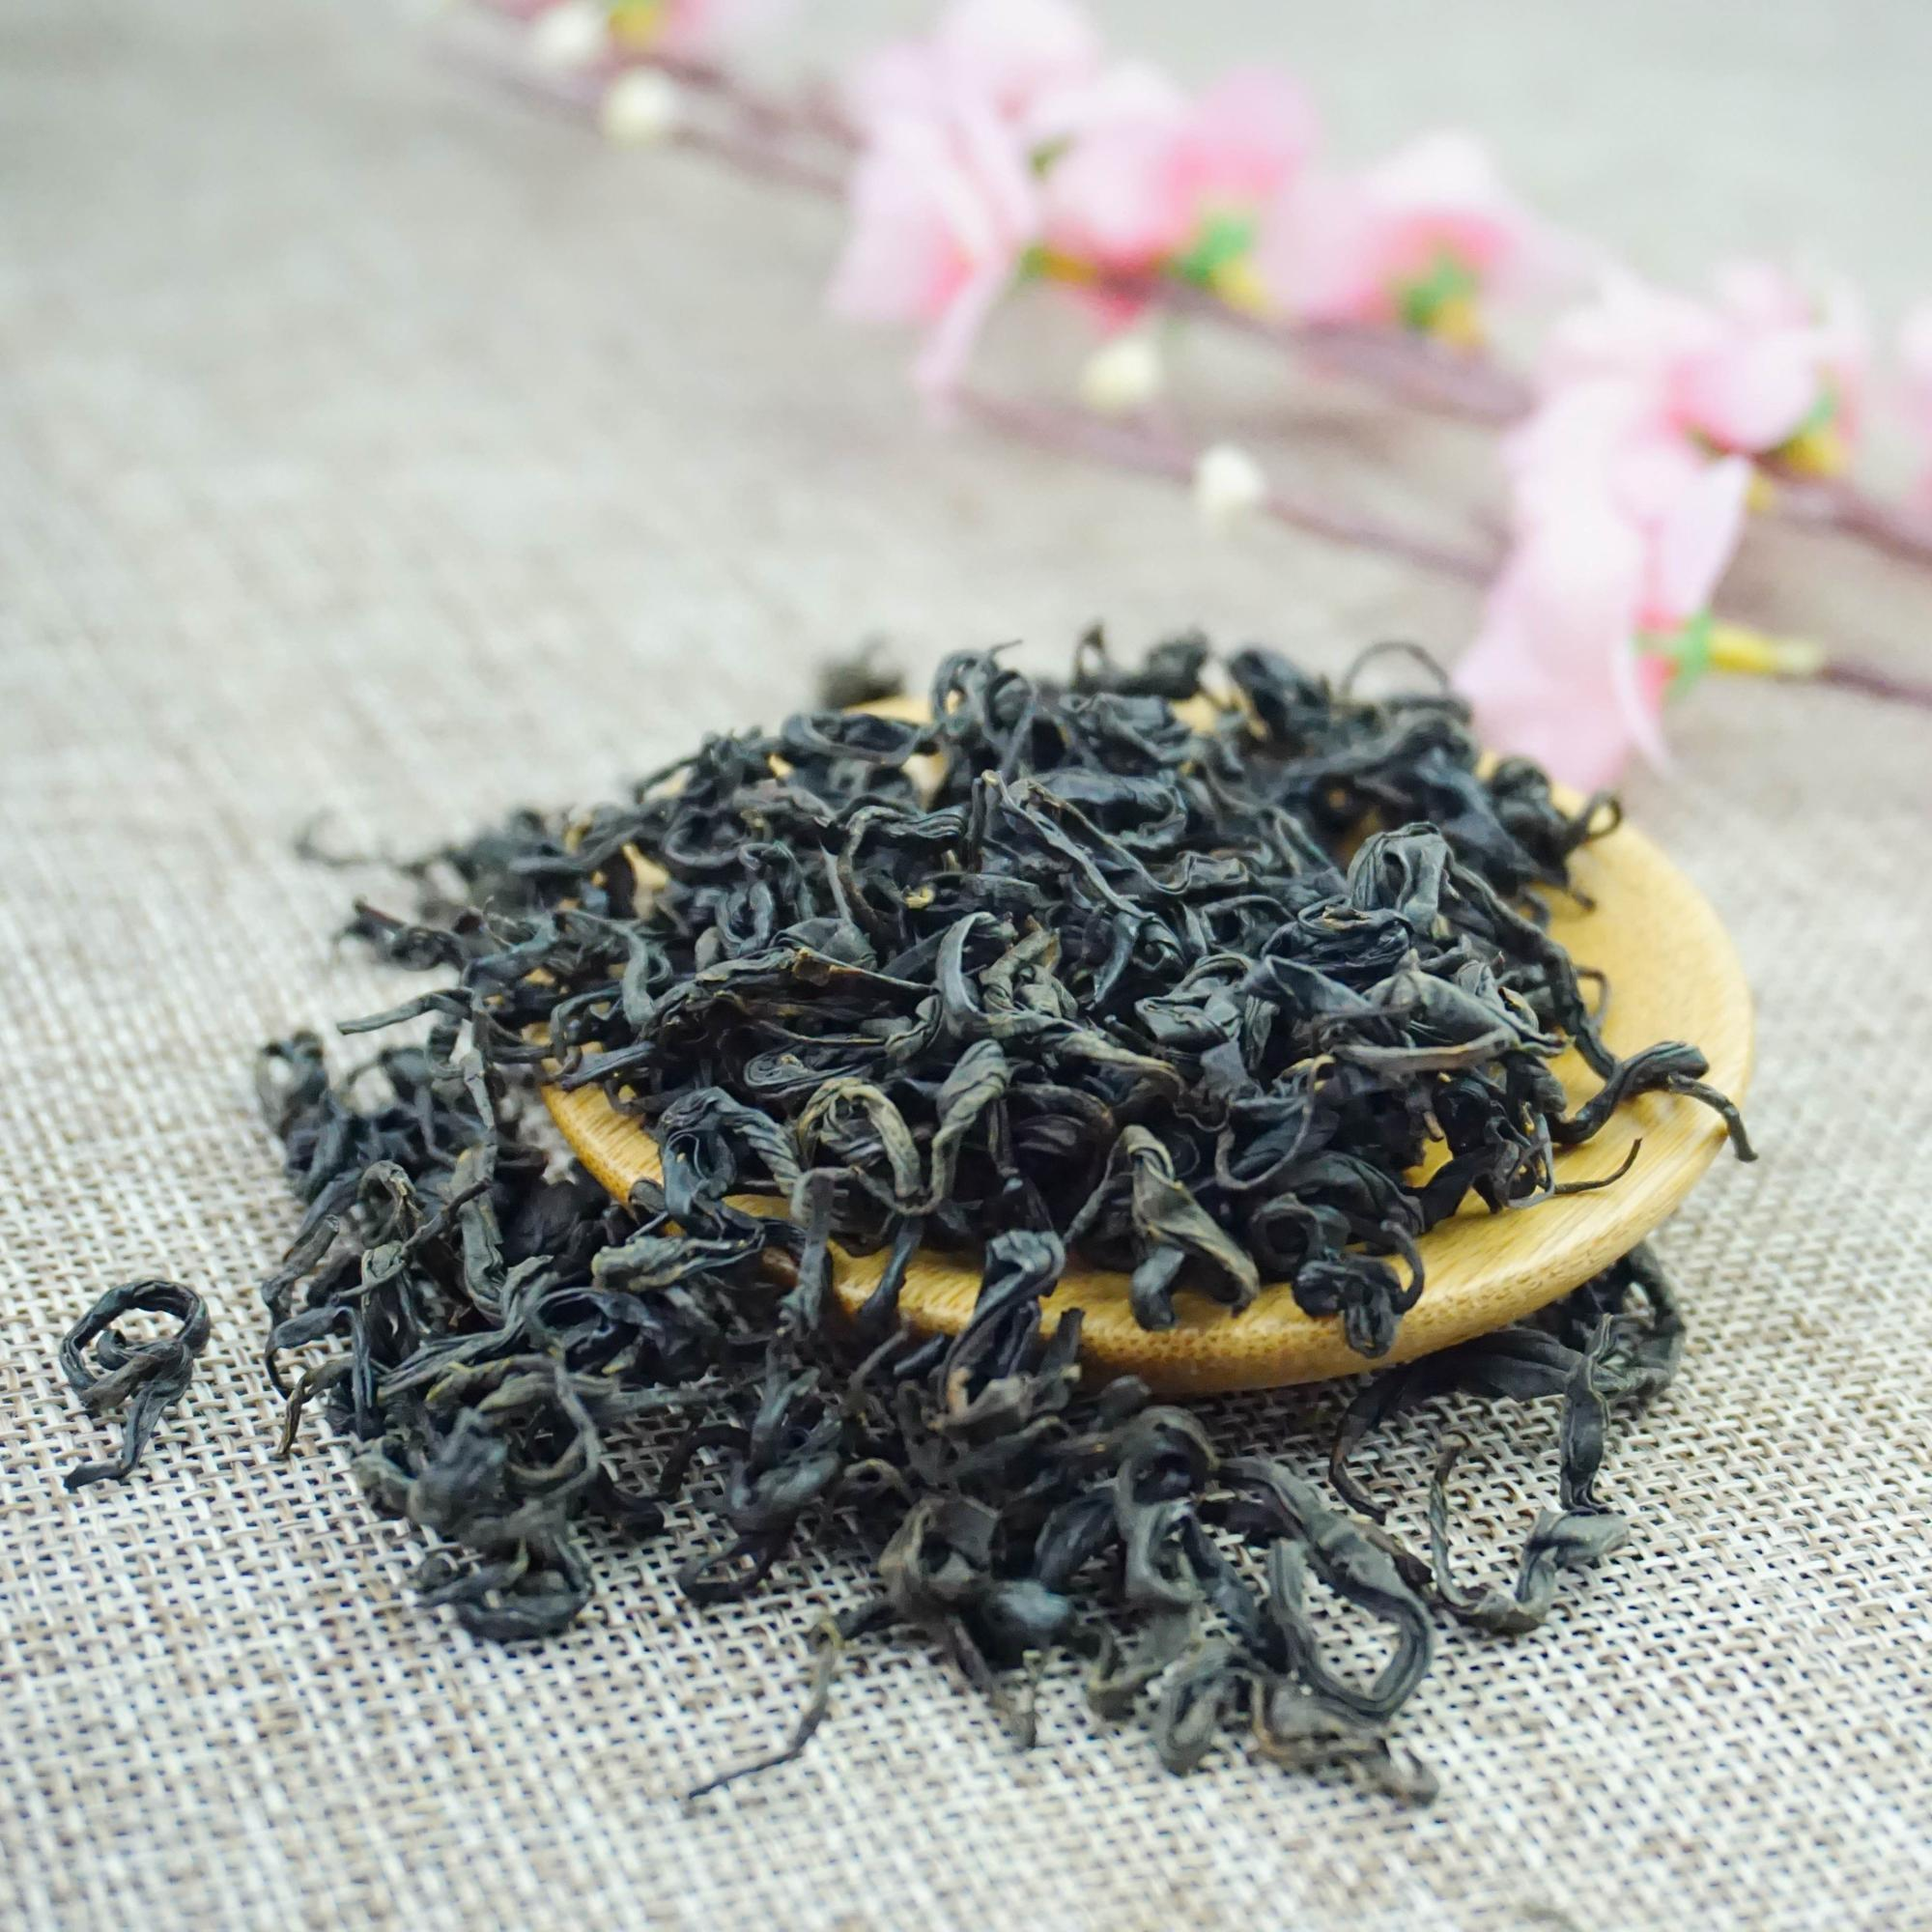 A Grade Dragon Black Chai Tea price of orthodox black tea protect healthy Chinese organic black tea - 4uTea | 4uTea.com